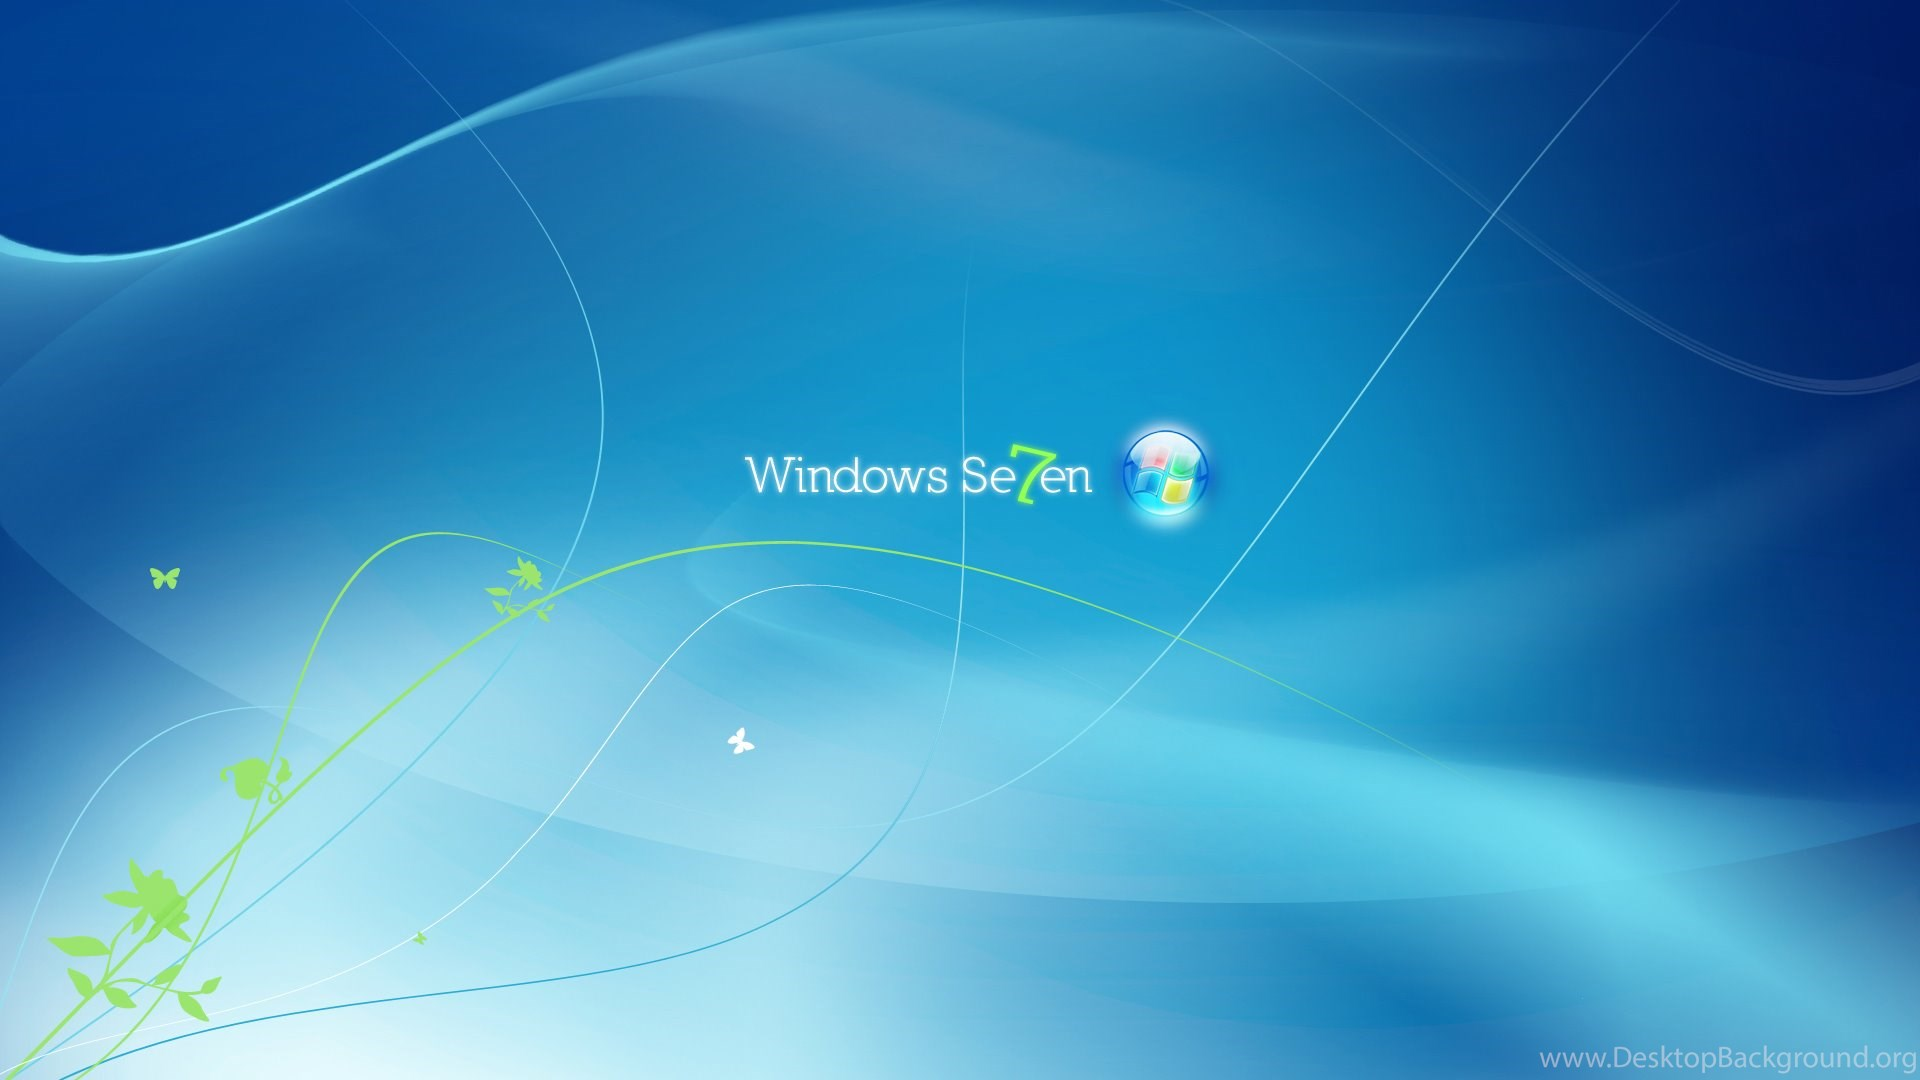 windows 7 wallpapers hd 1080p for desktop desktop background